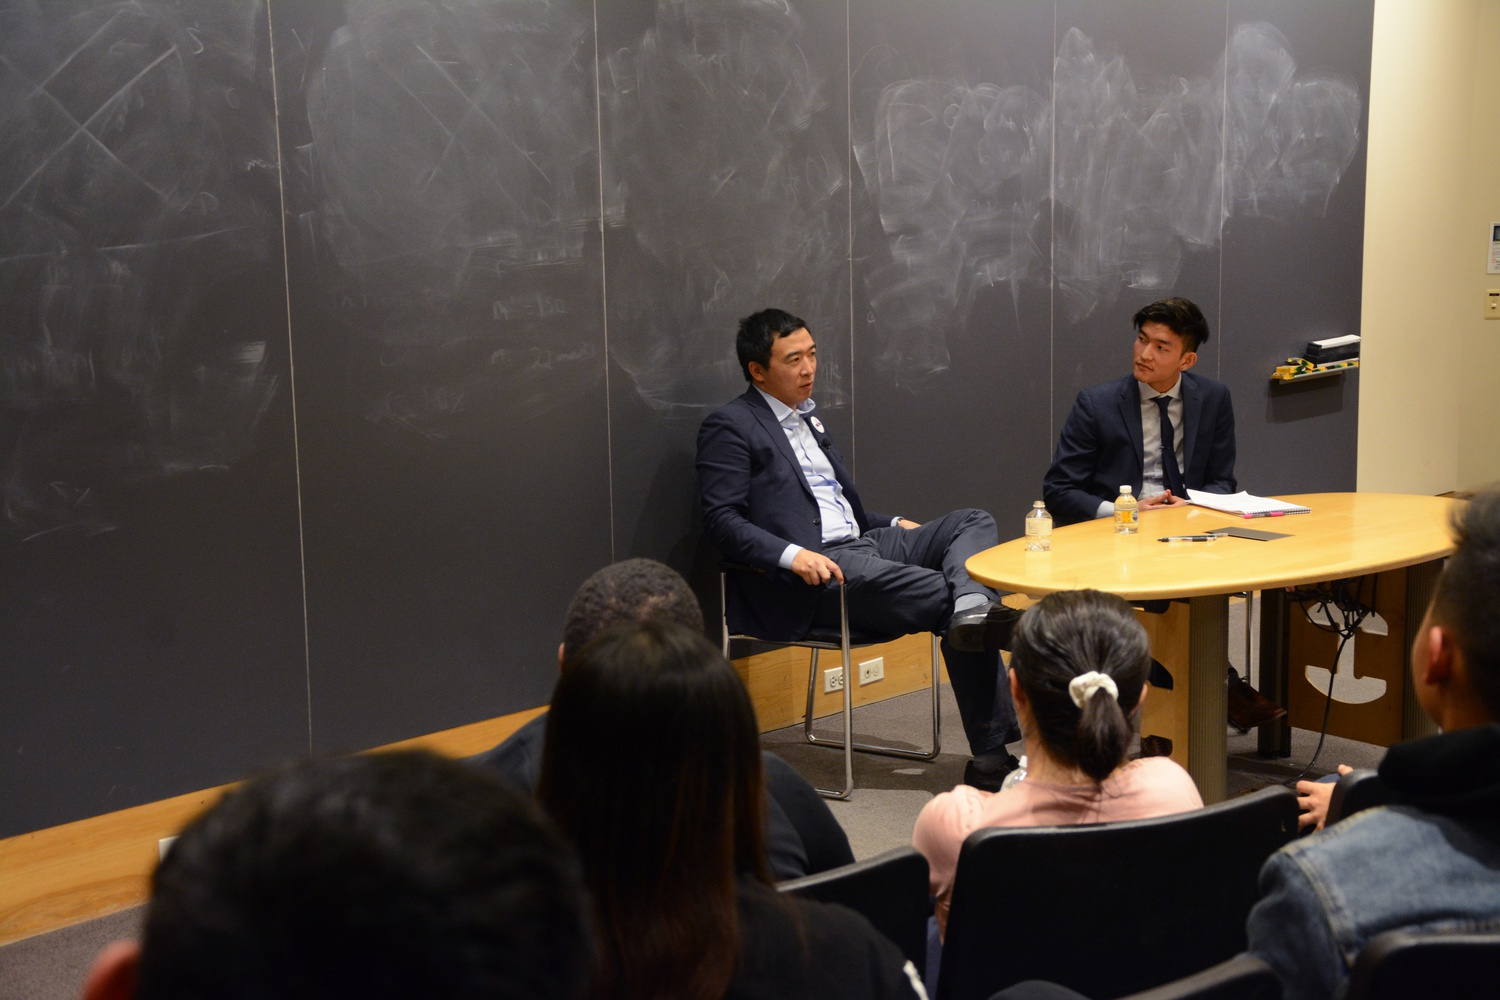 Yang has been invited to talk by the Harvard Project for Asian and International Relations, the Asian American Brotherhood, and the Harvard-Radcliffe Chinese Students Association.